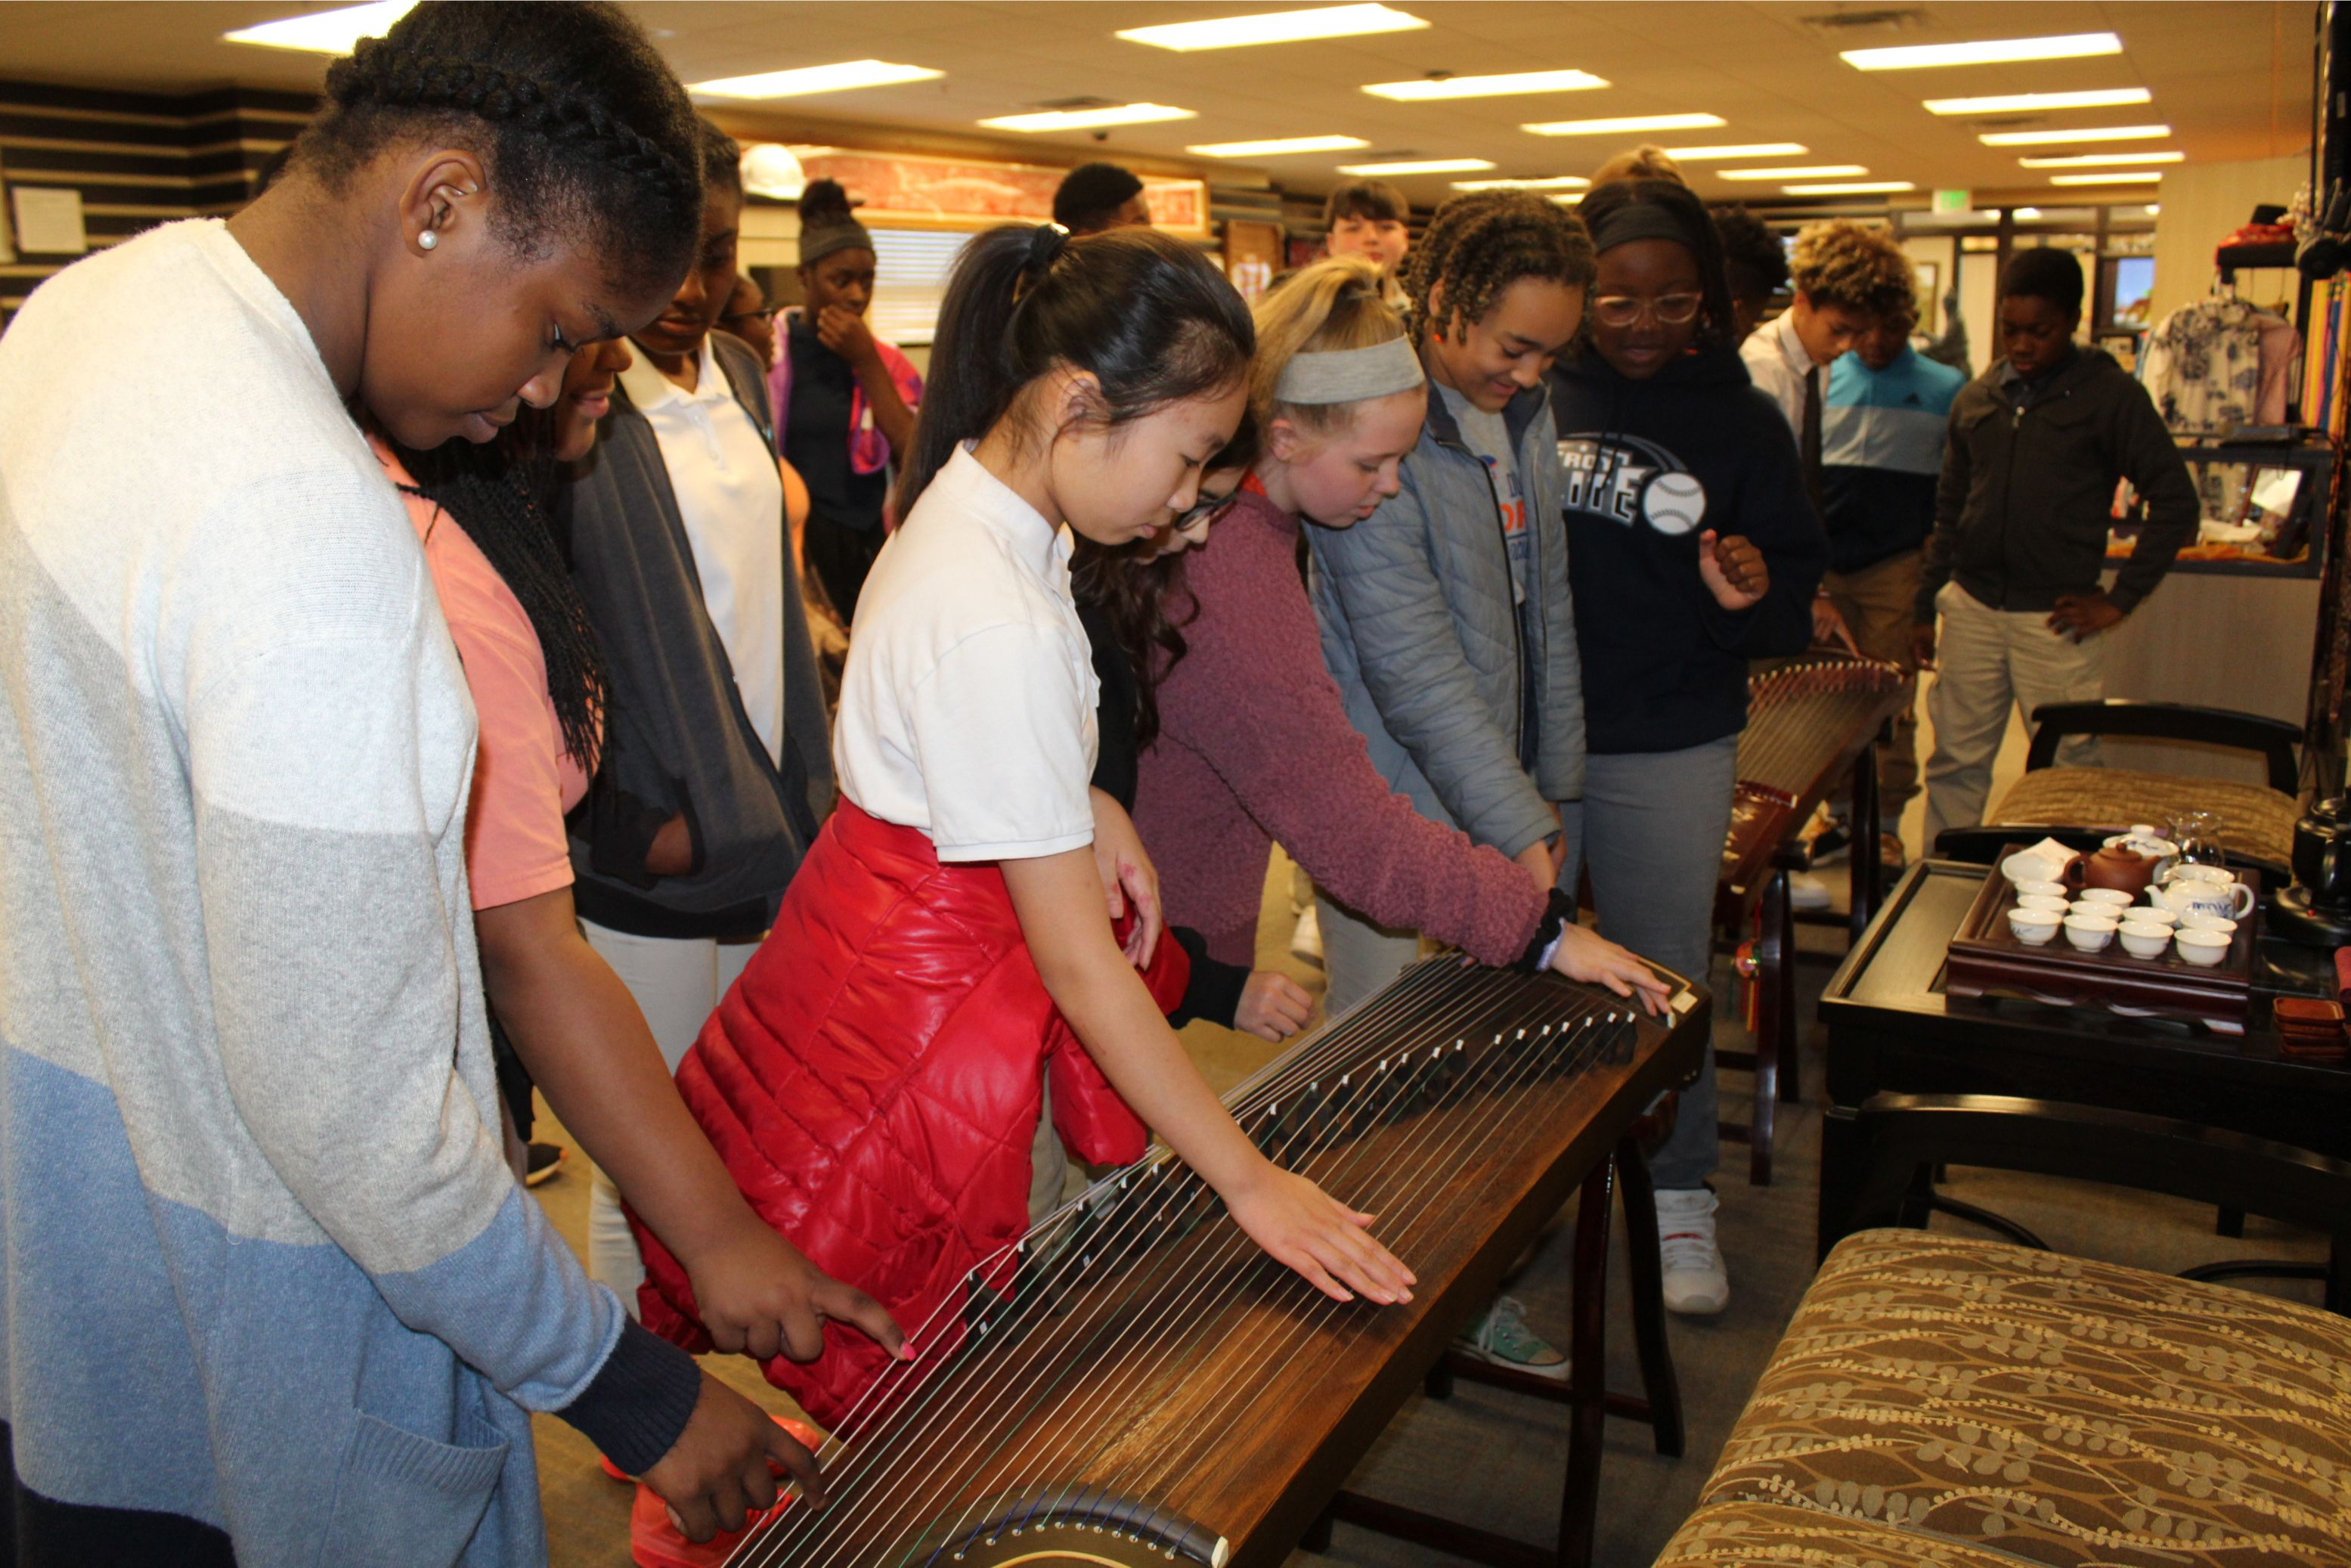 The students reach out to play on the guzheng.